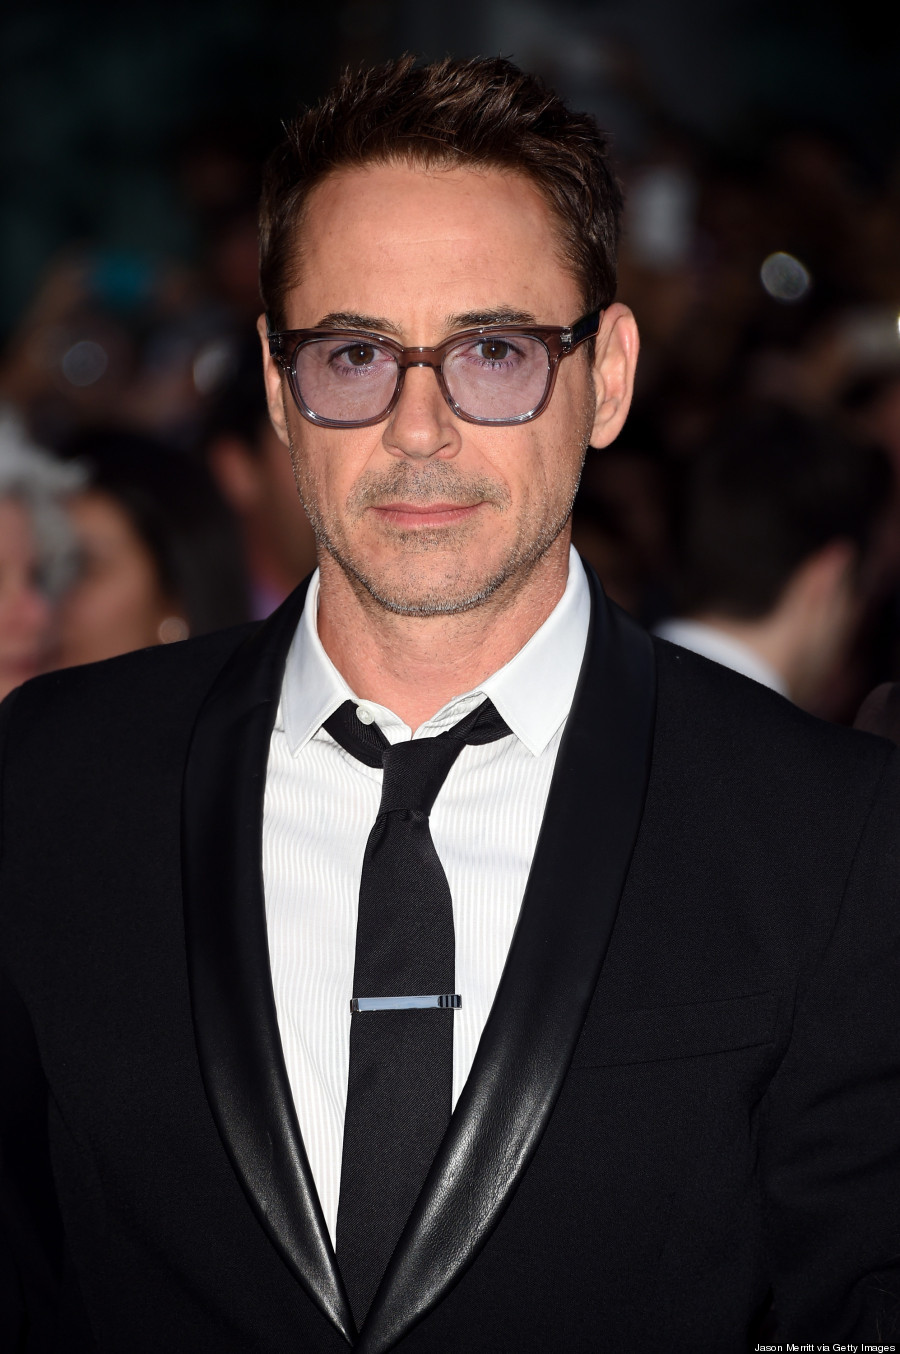 Robert Downey Jr. TIFF 2014: 'The Judge' Star Brings The ... Robert Downey